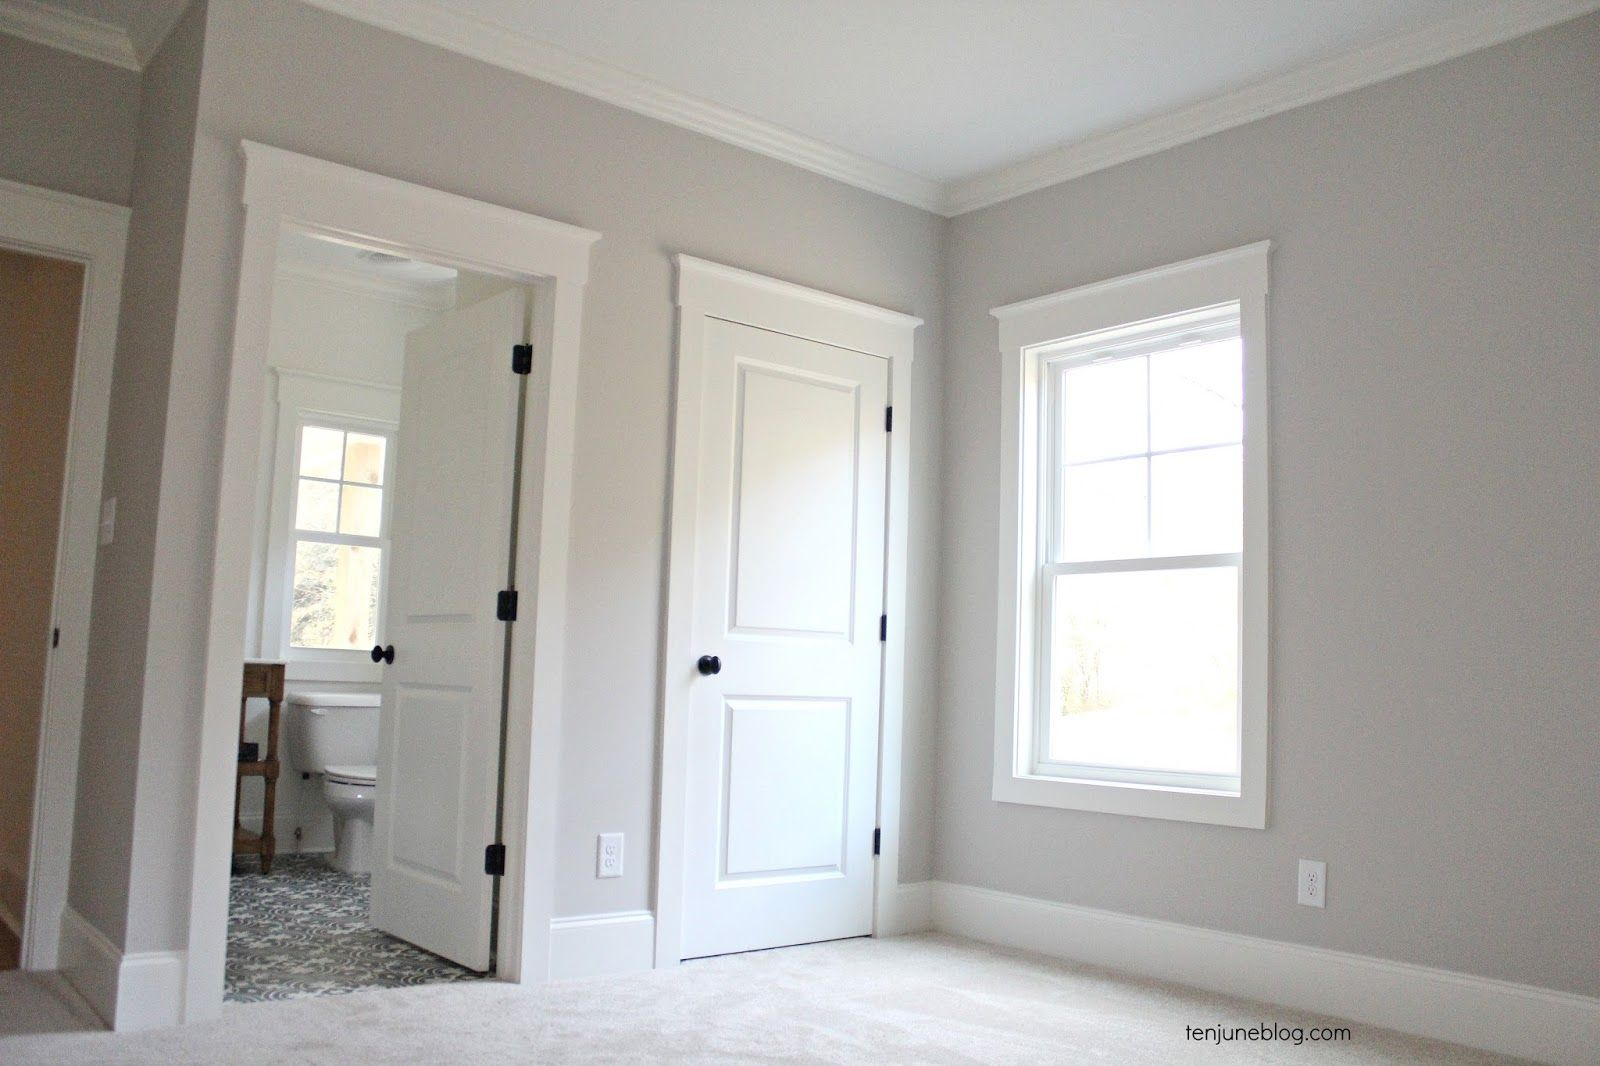 Ten June: How to Create Simple + Cheap Farmhouse Trim | For the Home ...